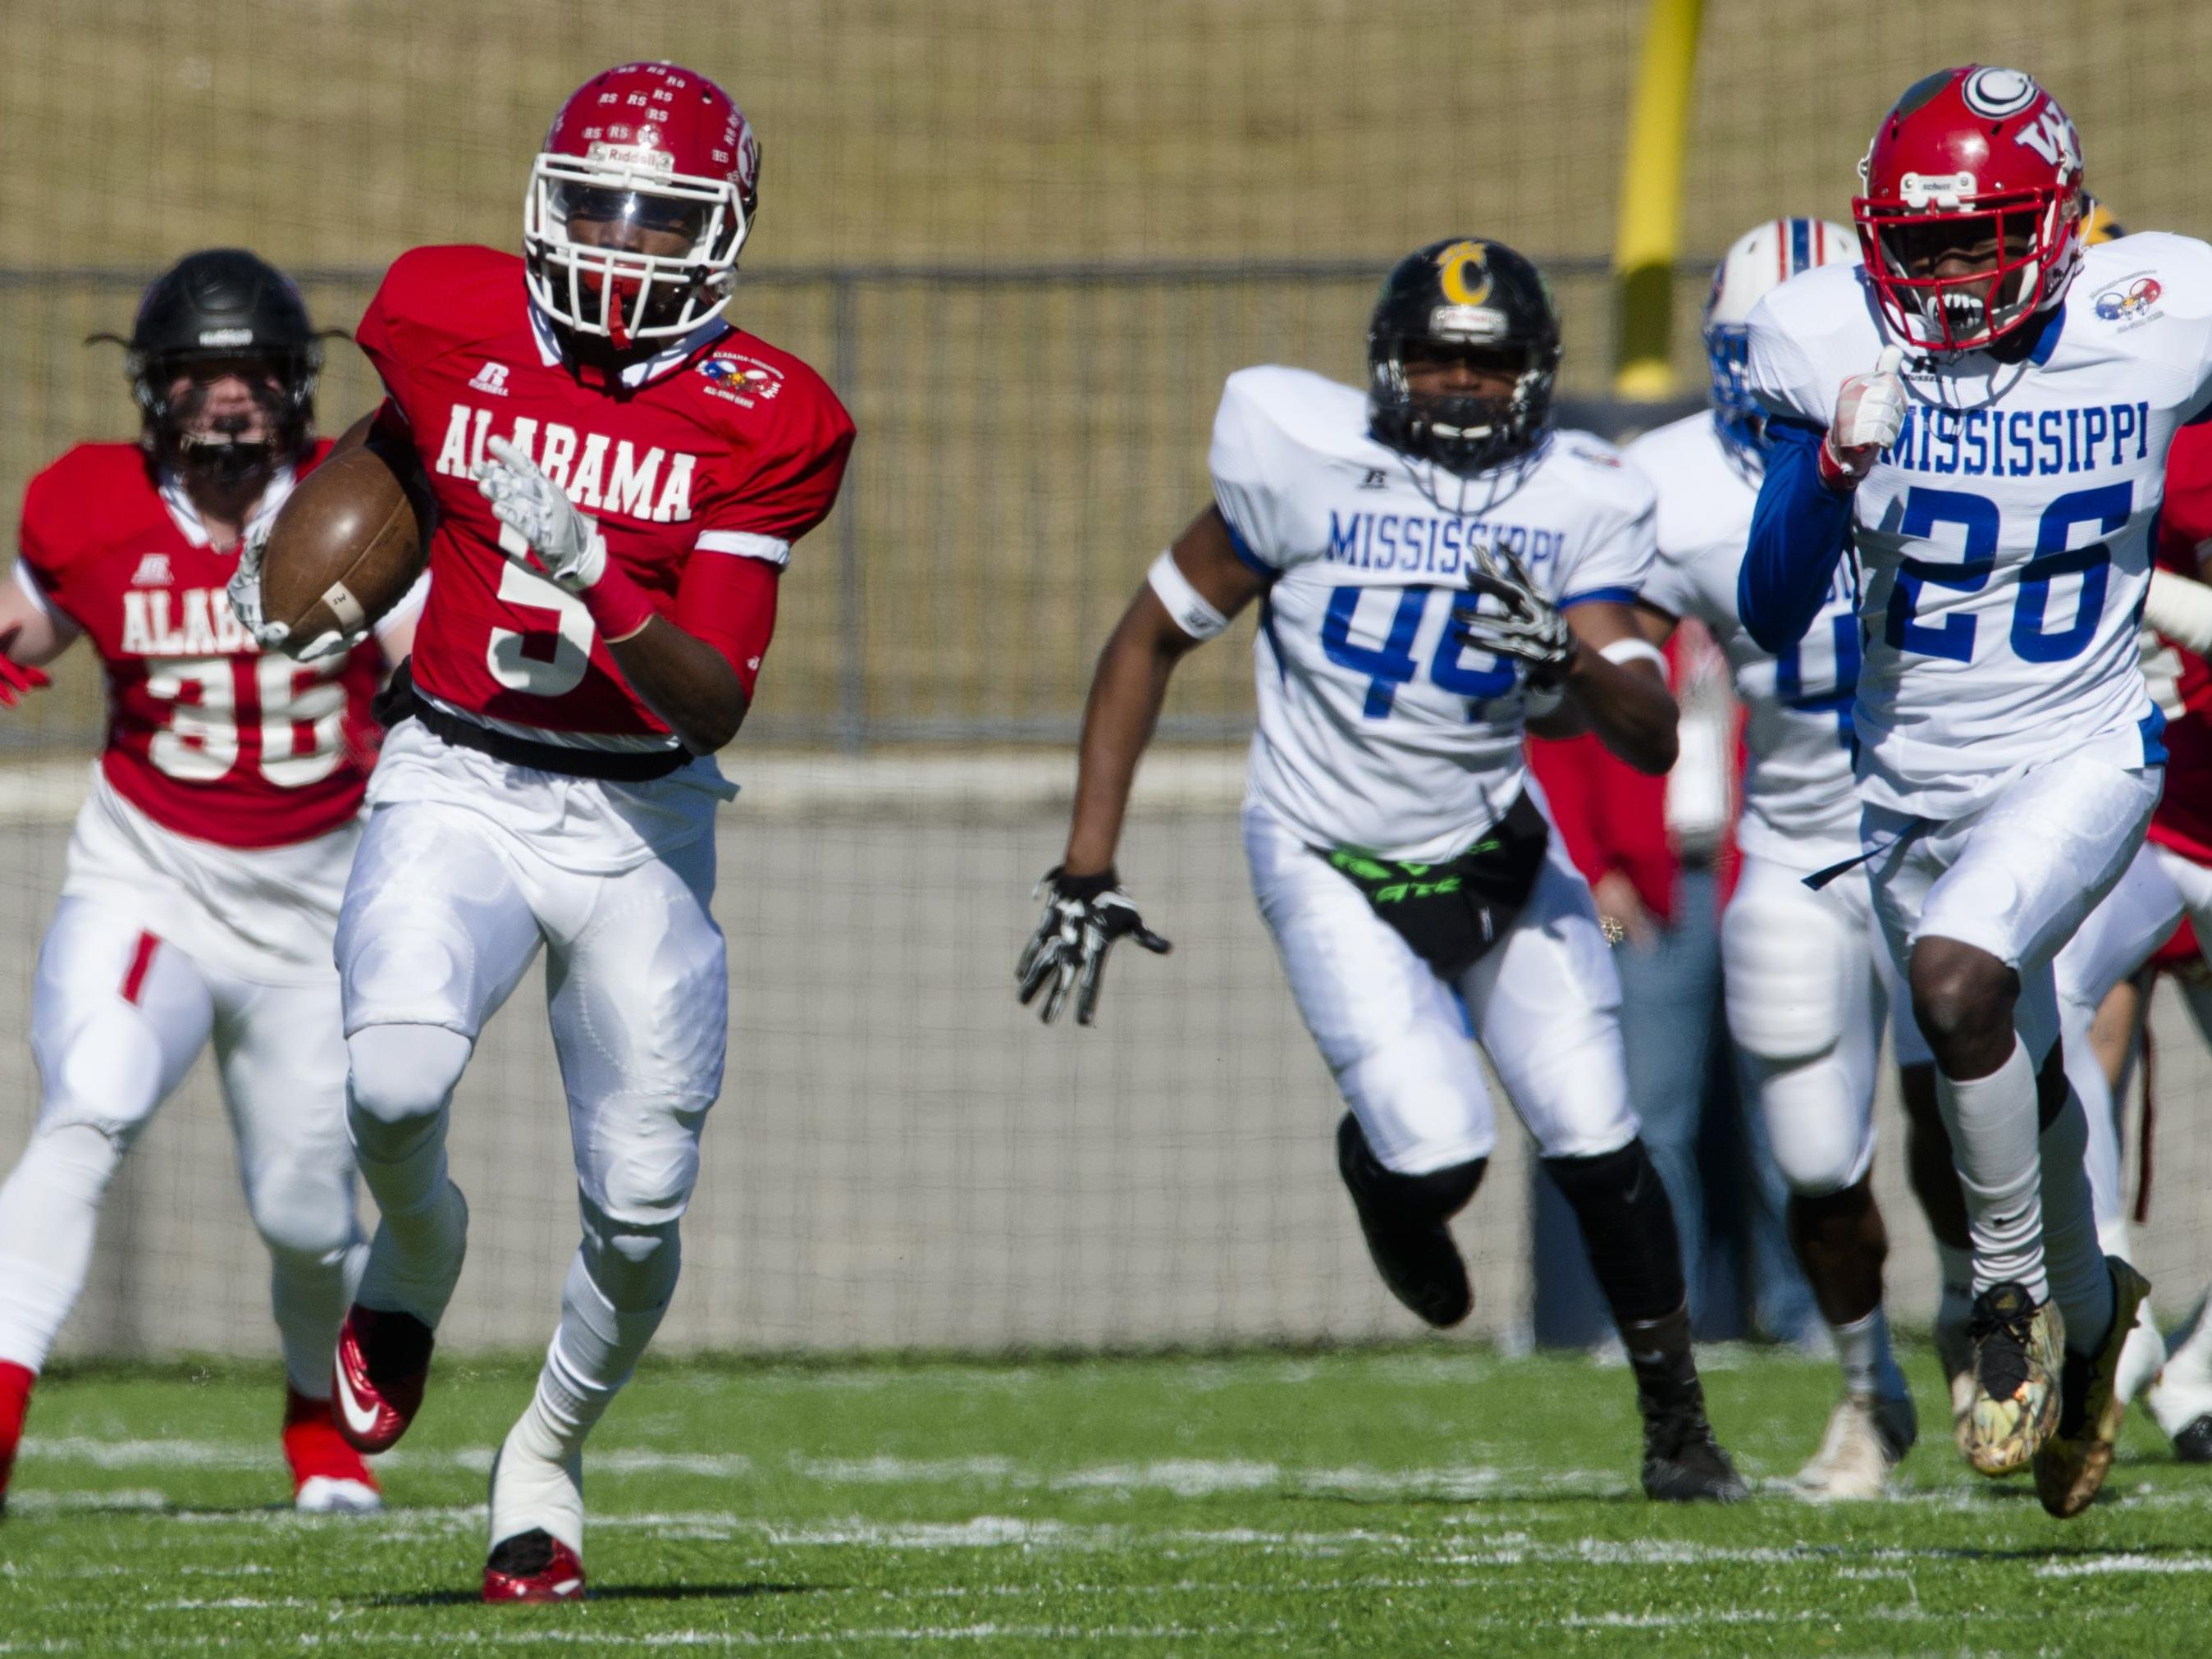 Alabama All-Star Henry Ruggs III of Robert E. Lee, returns a kick off 90 yards for a touchdown during the Alabama-Mississippi All-Star Football Game at the Cramton Bowl on Saturday.